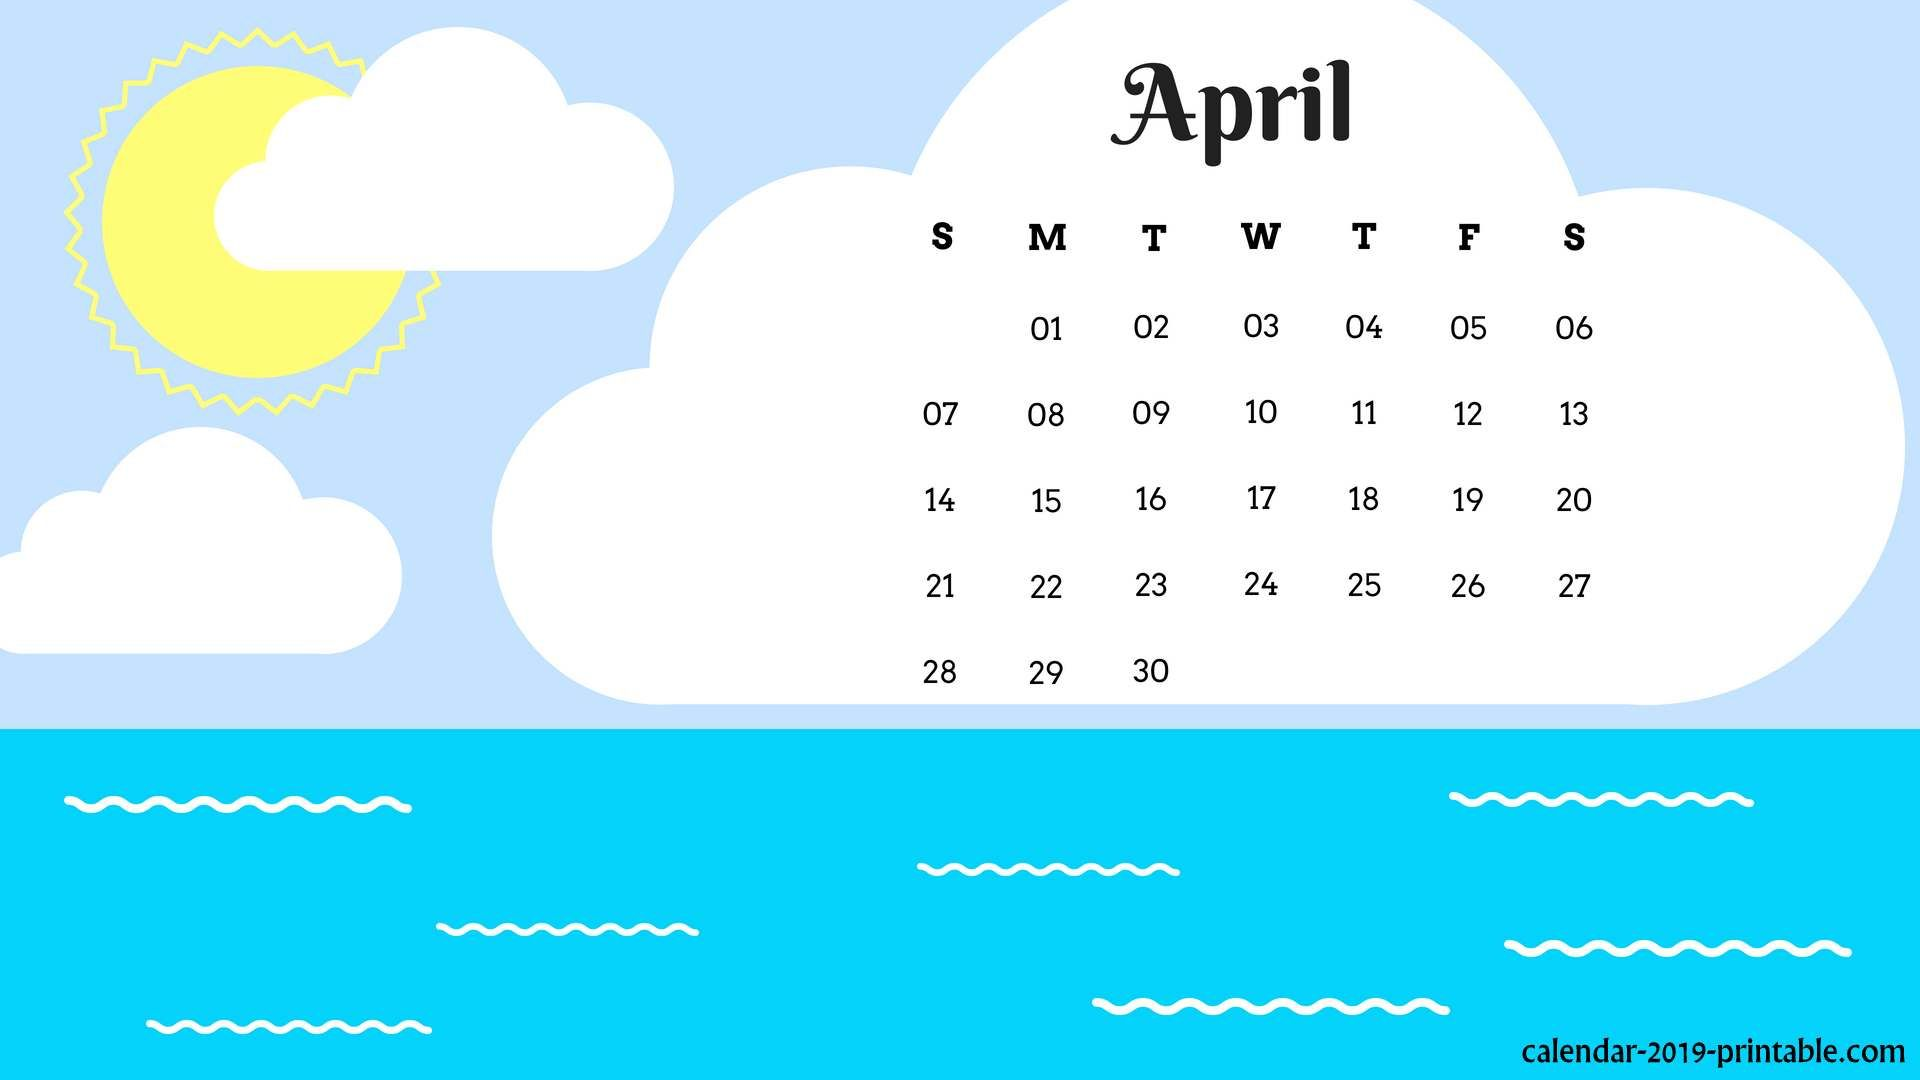 april 2019 calendar wallpaper Calendar 2019 Wallpapers in 2019 1920x1080